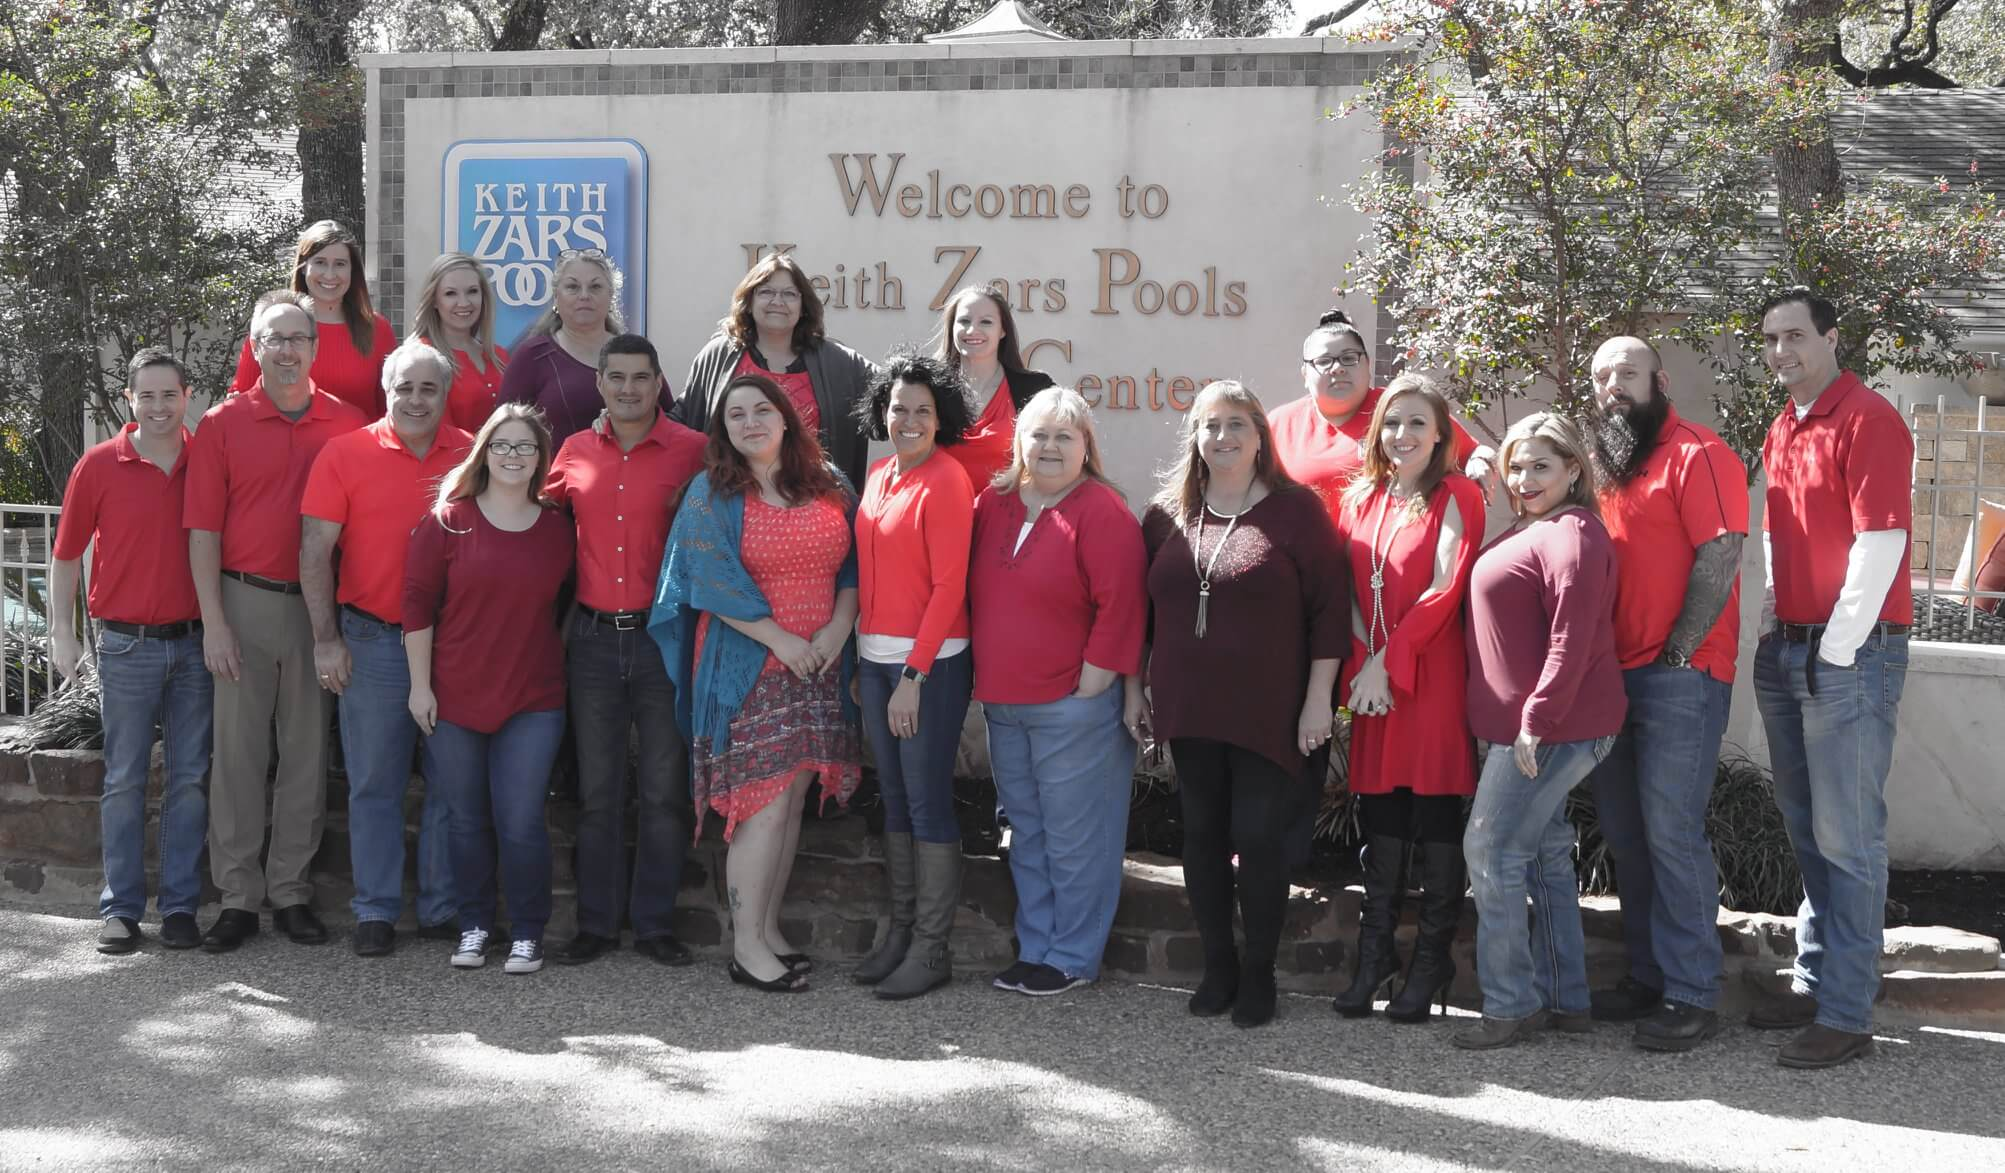 Keith Zars Pools Goes Red for Heart Health